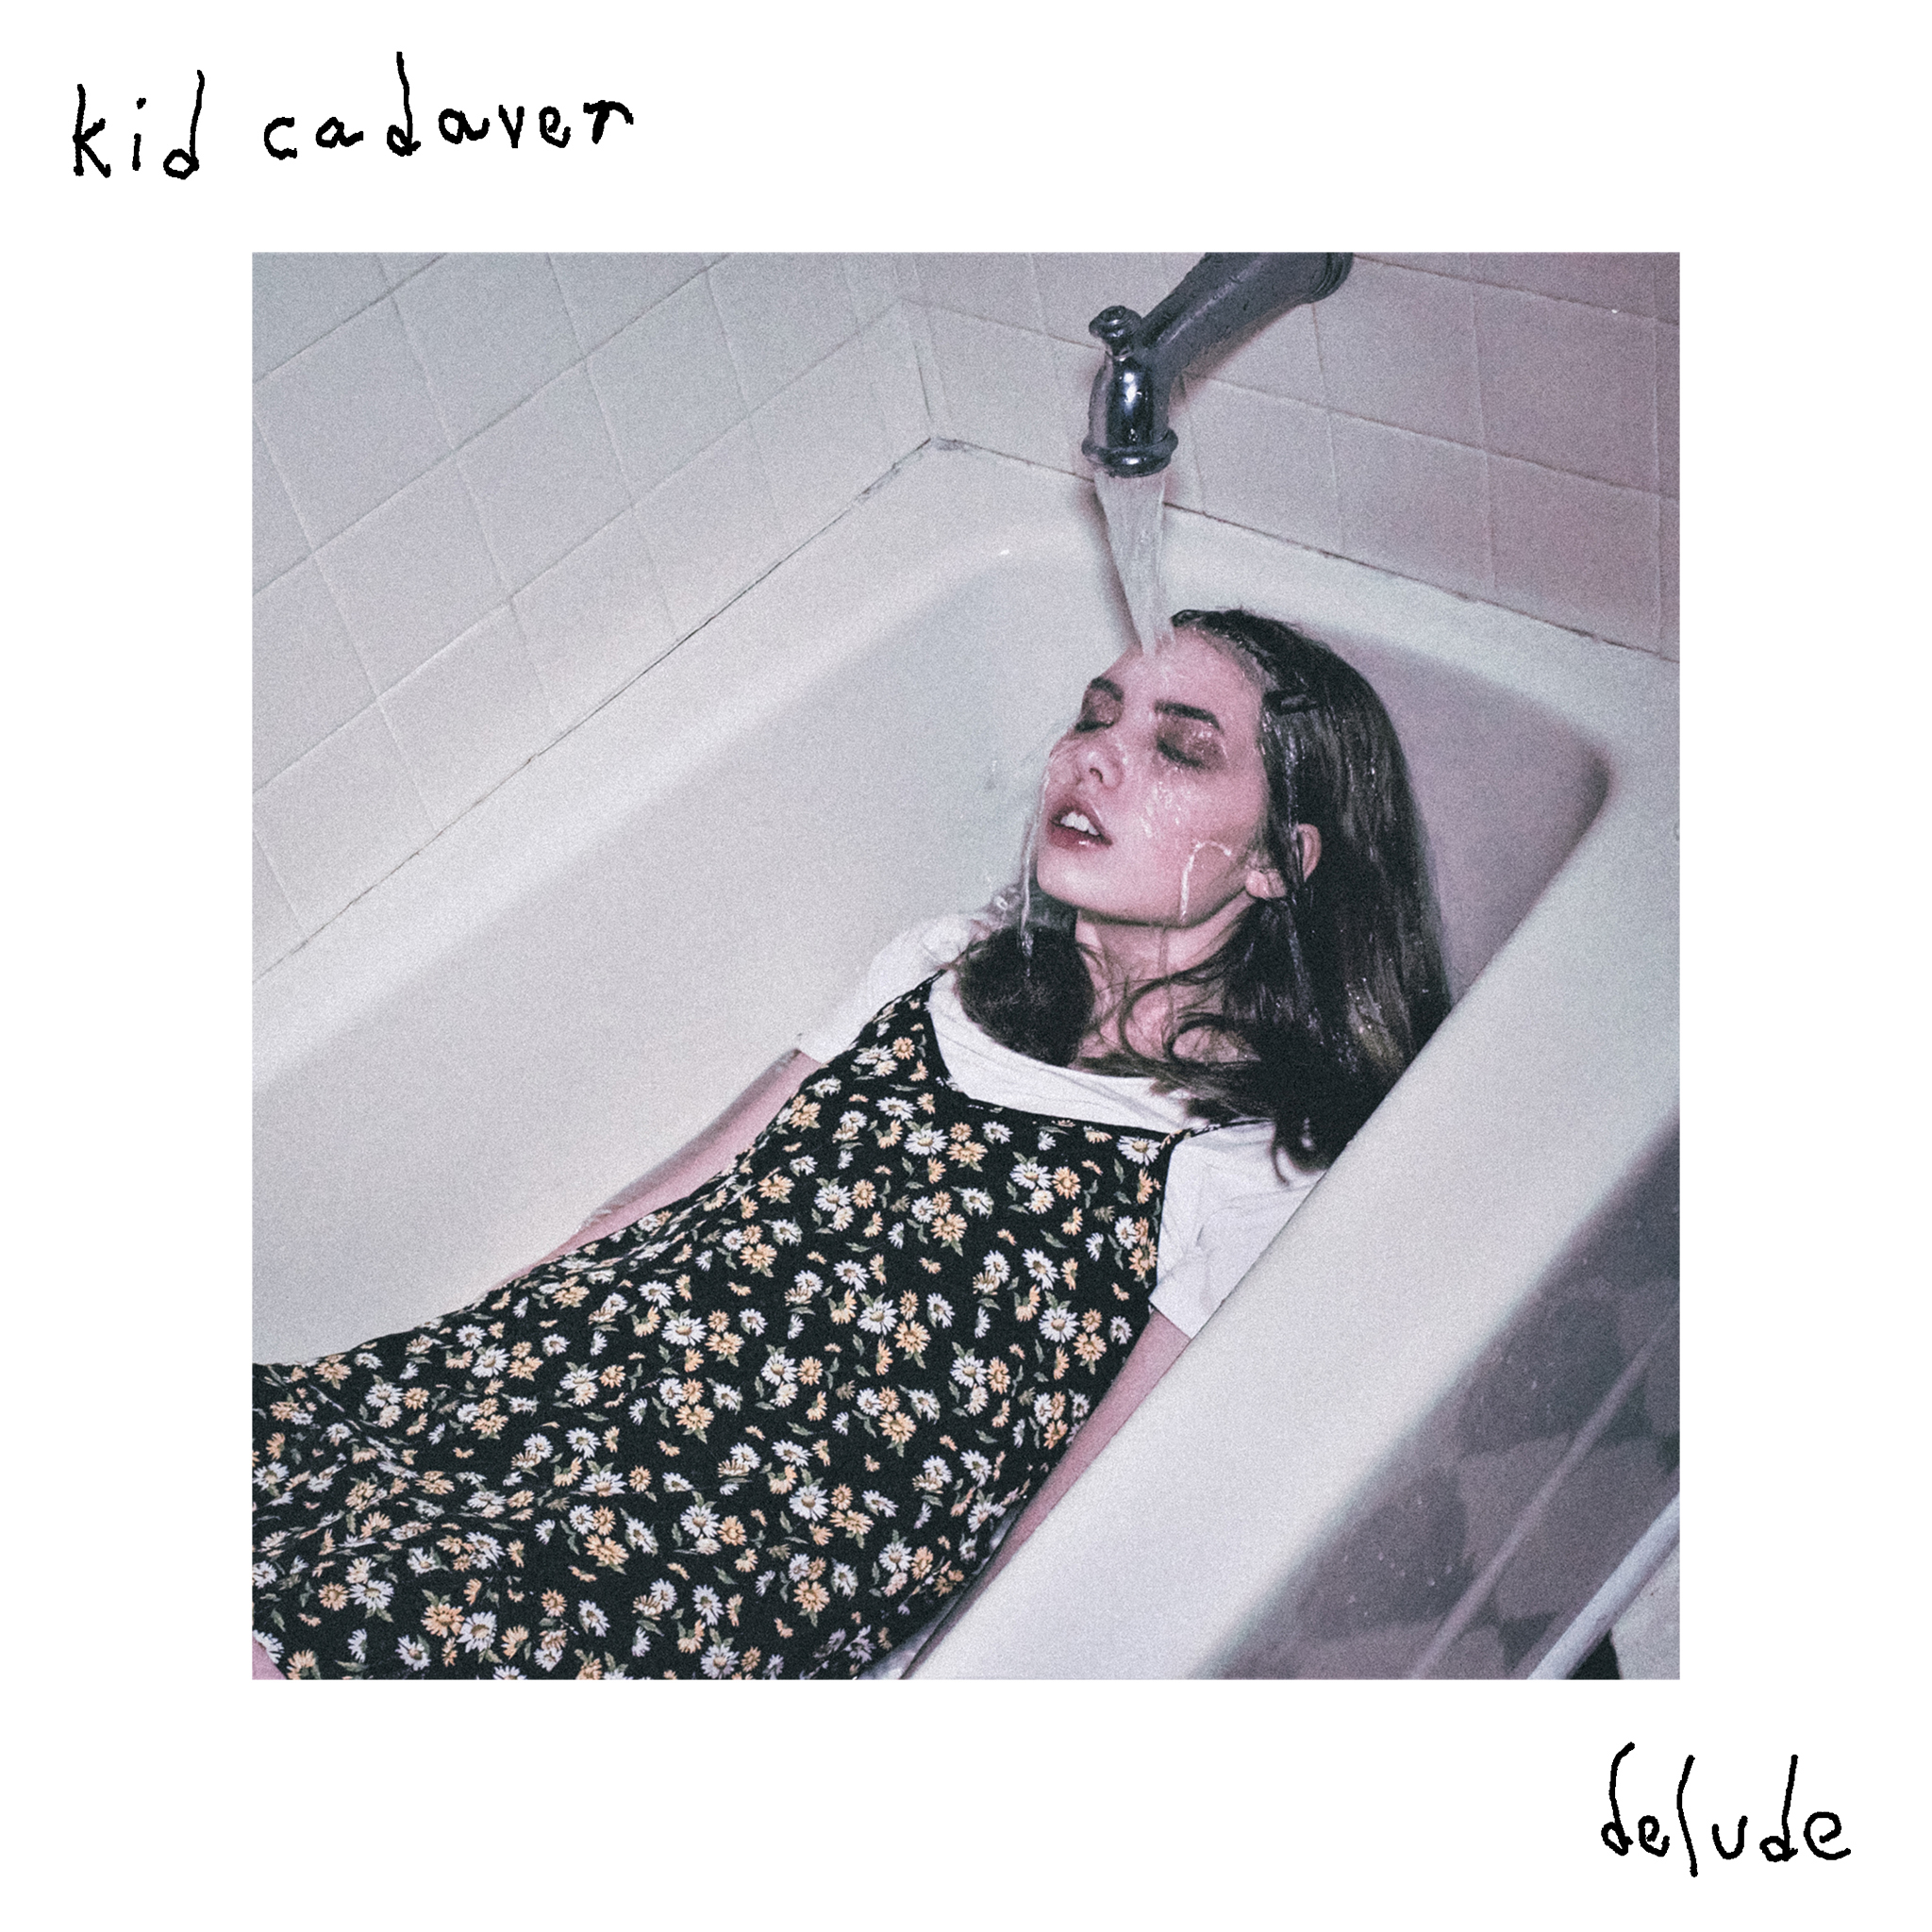 Delude EP - Kid Cadaver